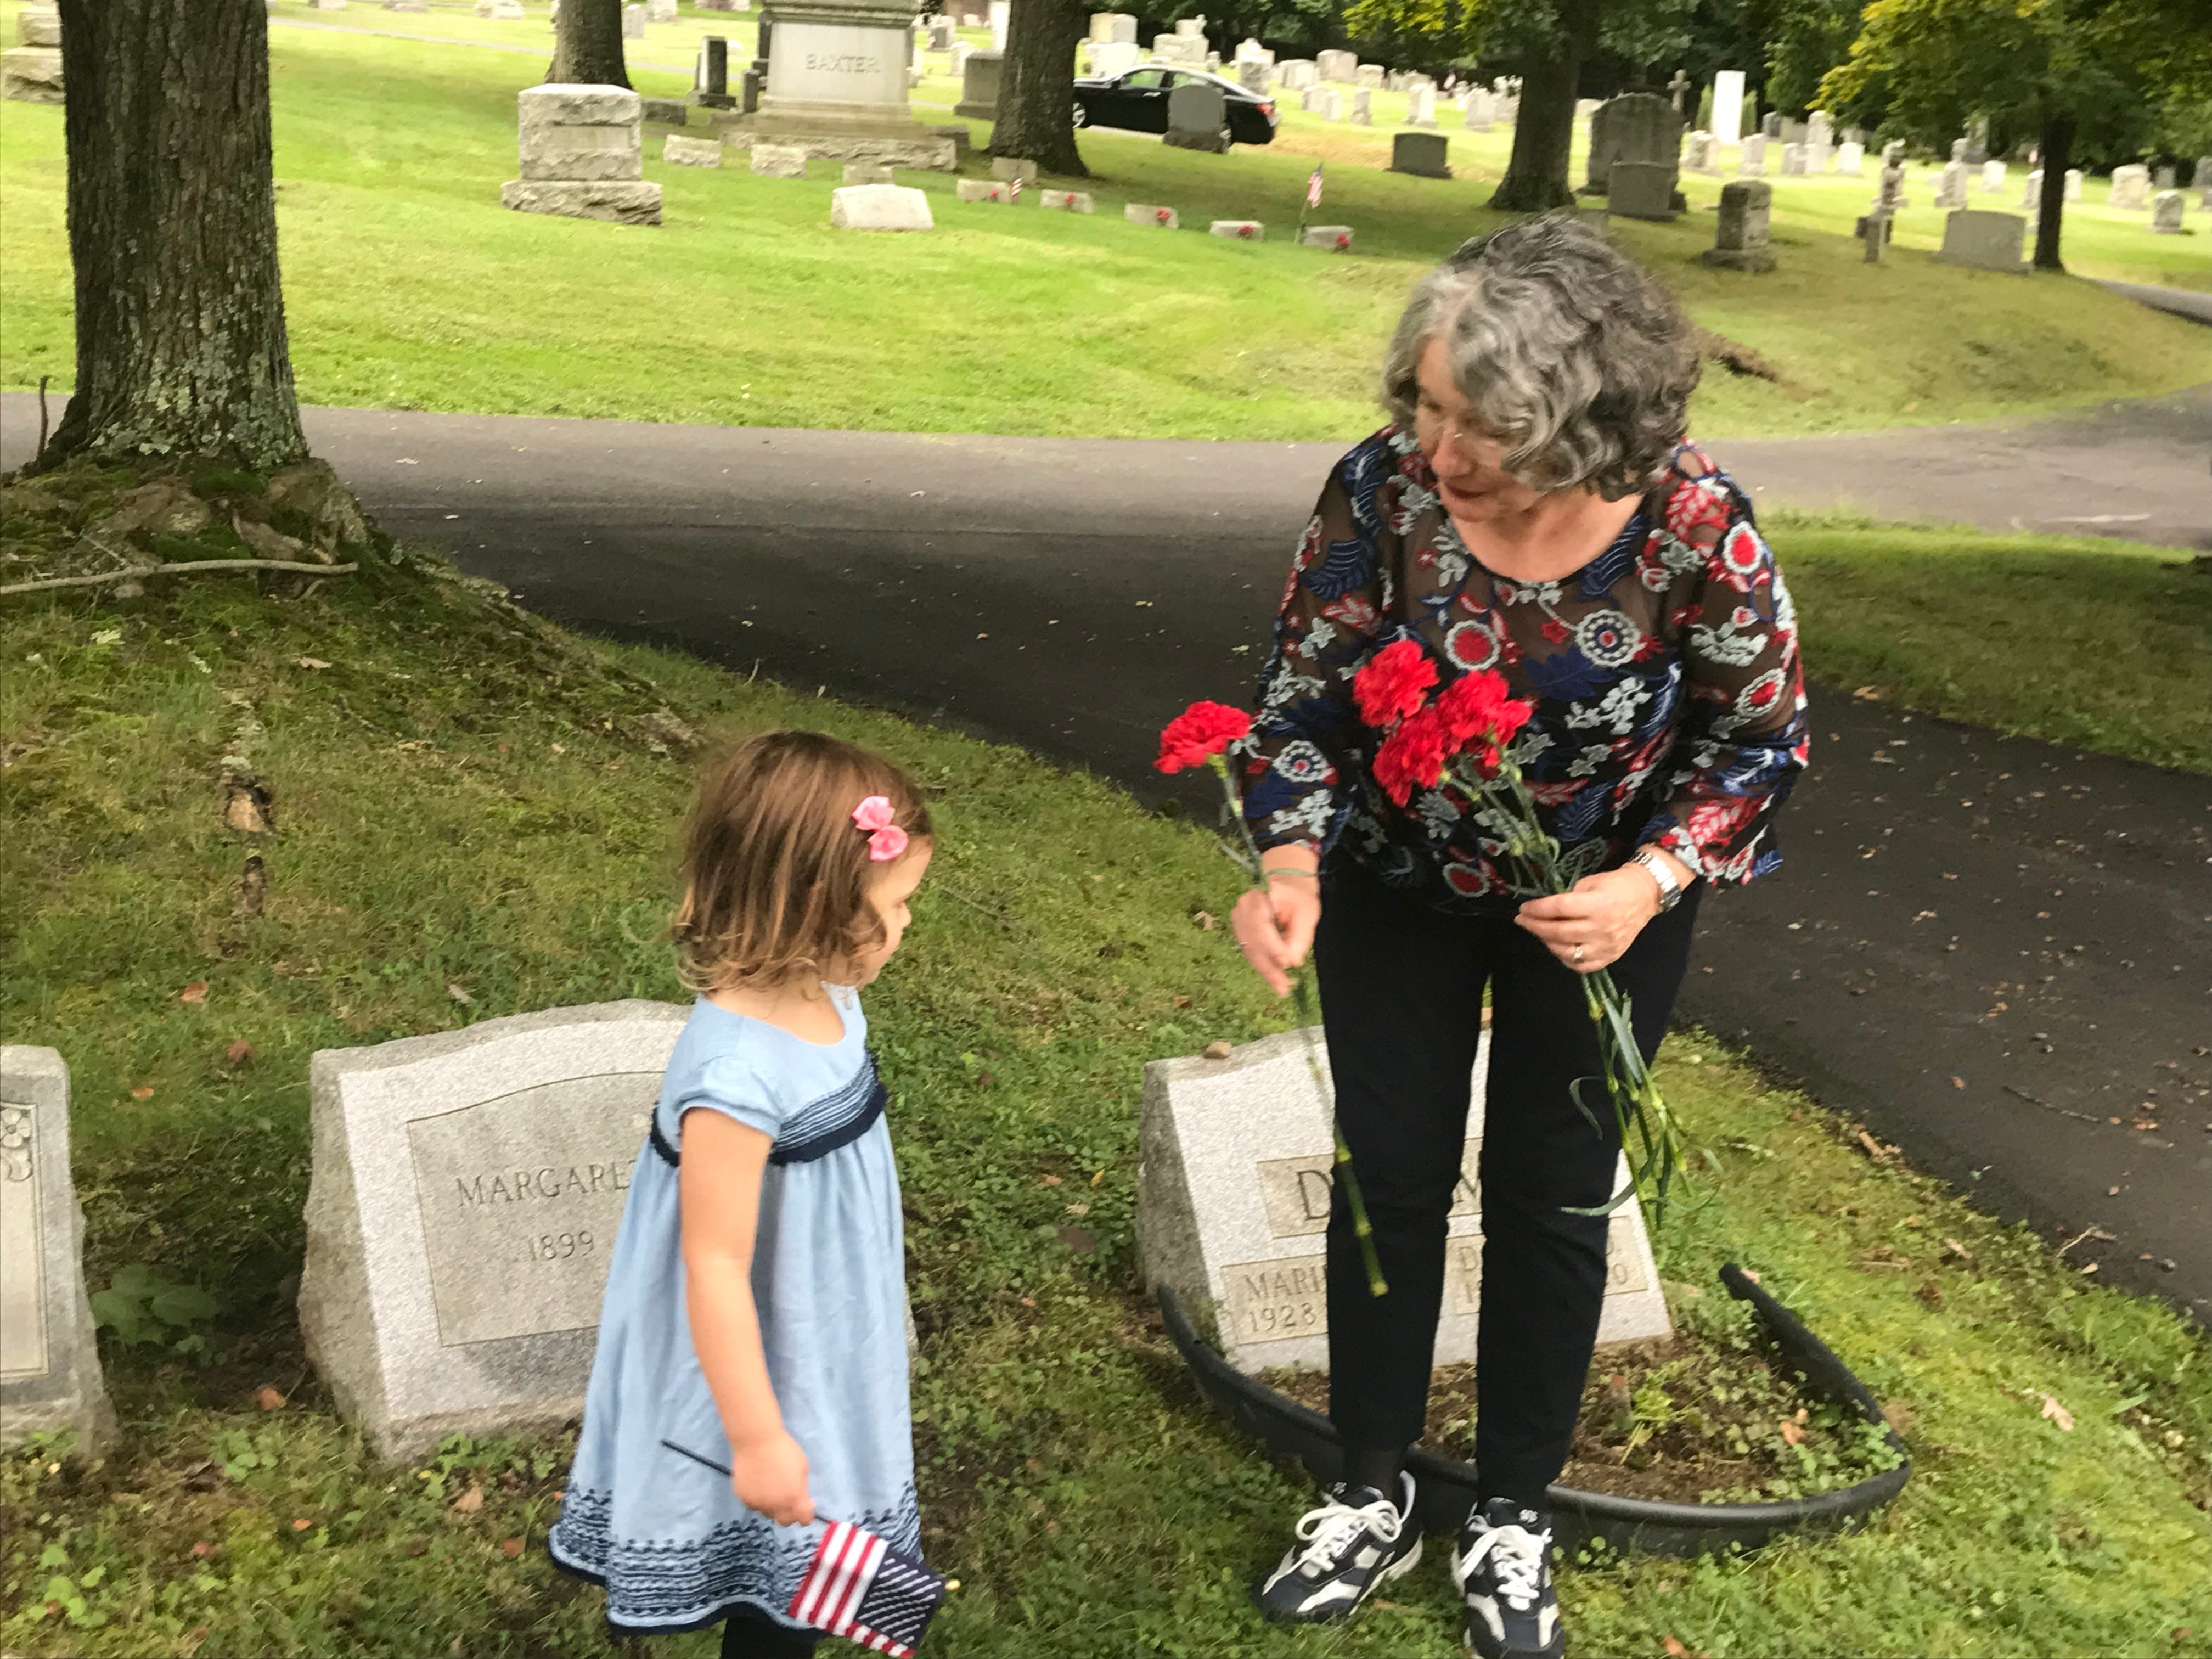 Close-knit family visits grave, memorial of heir who died exactly 100 years ago in France during World War I.